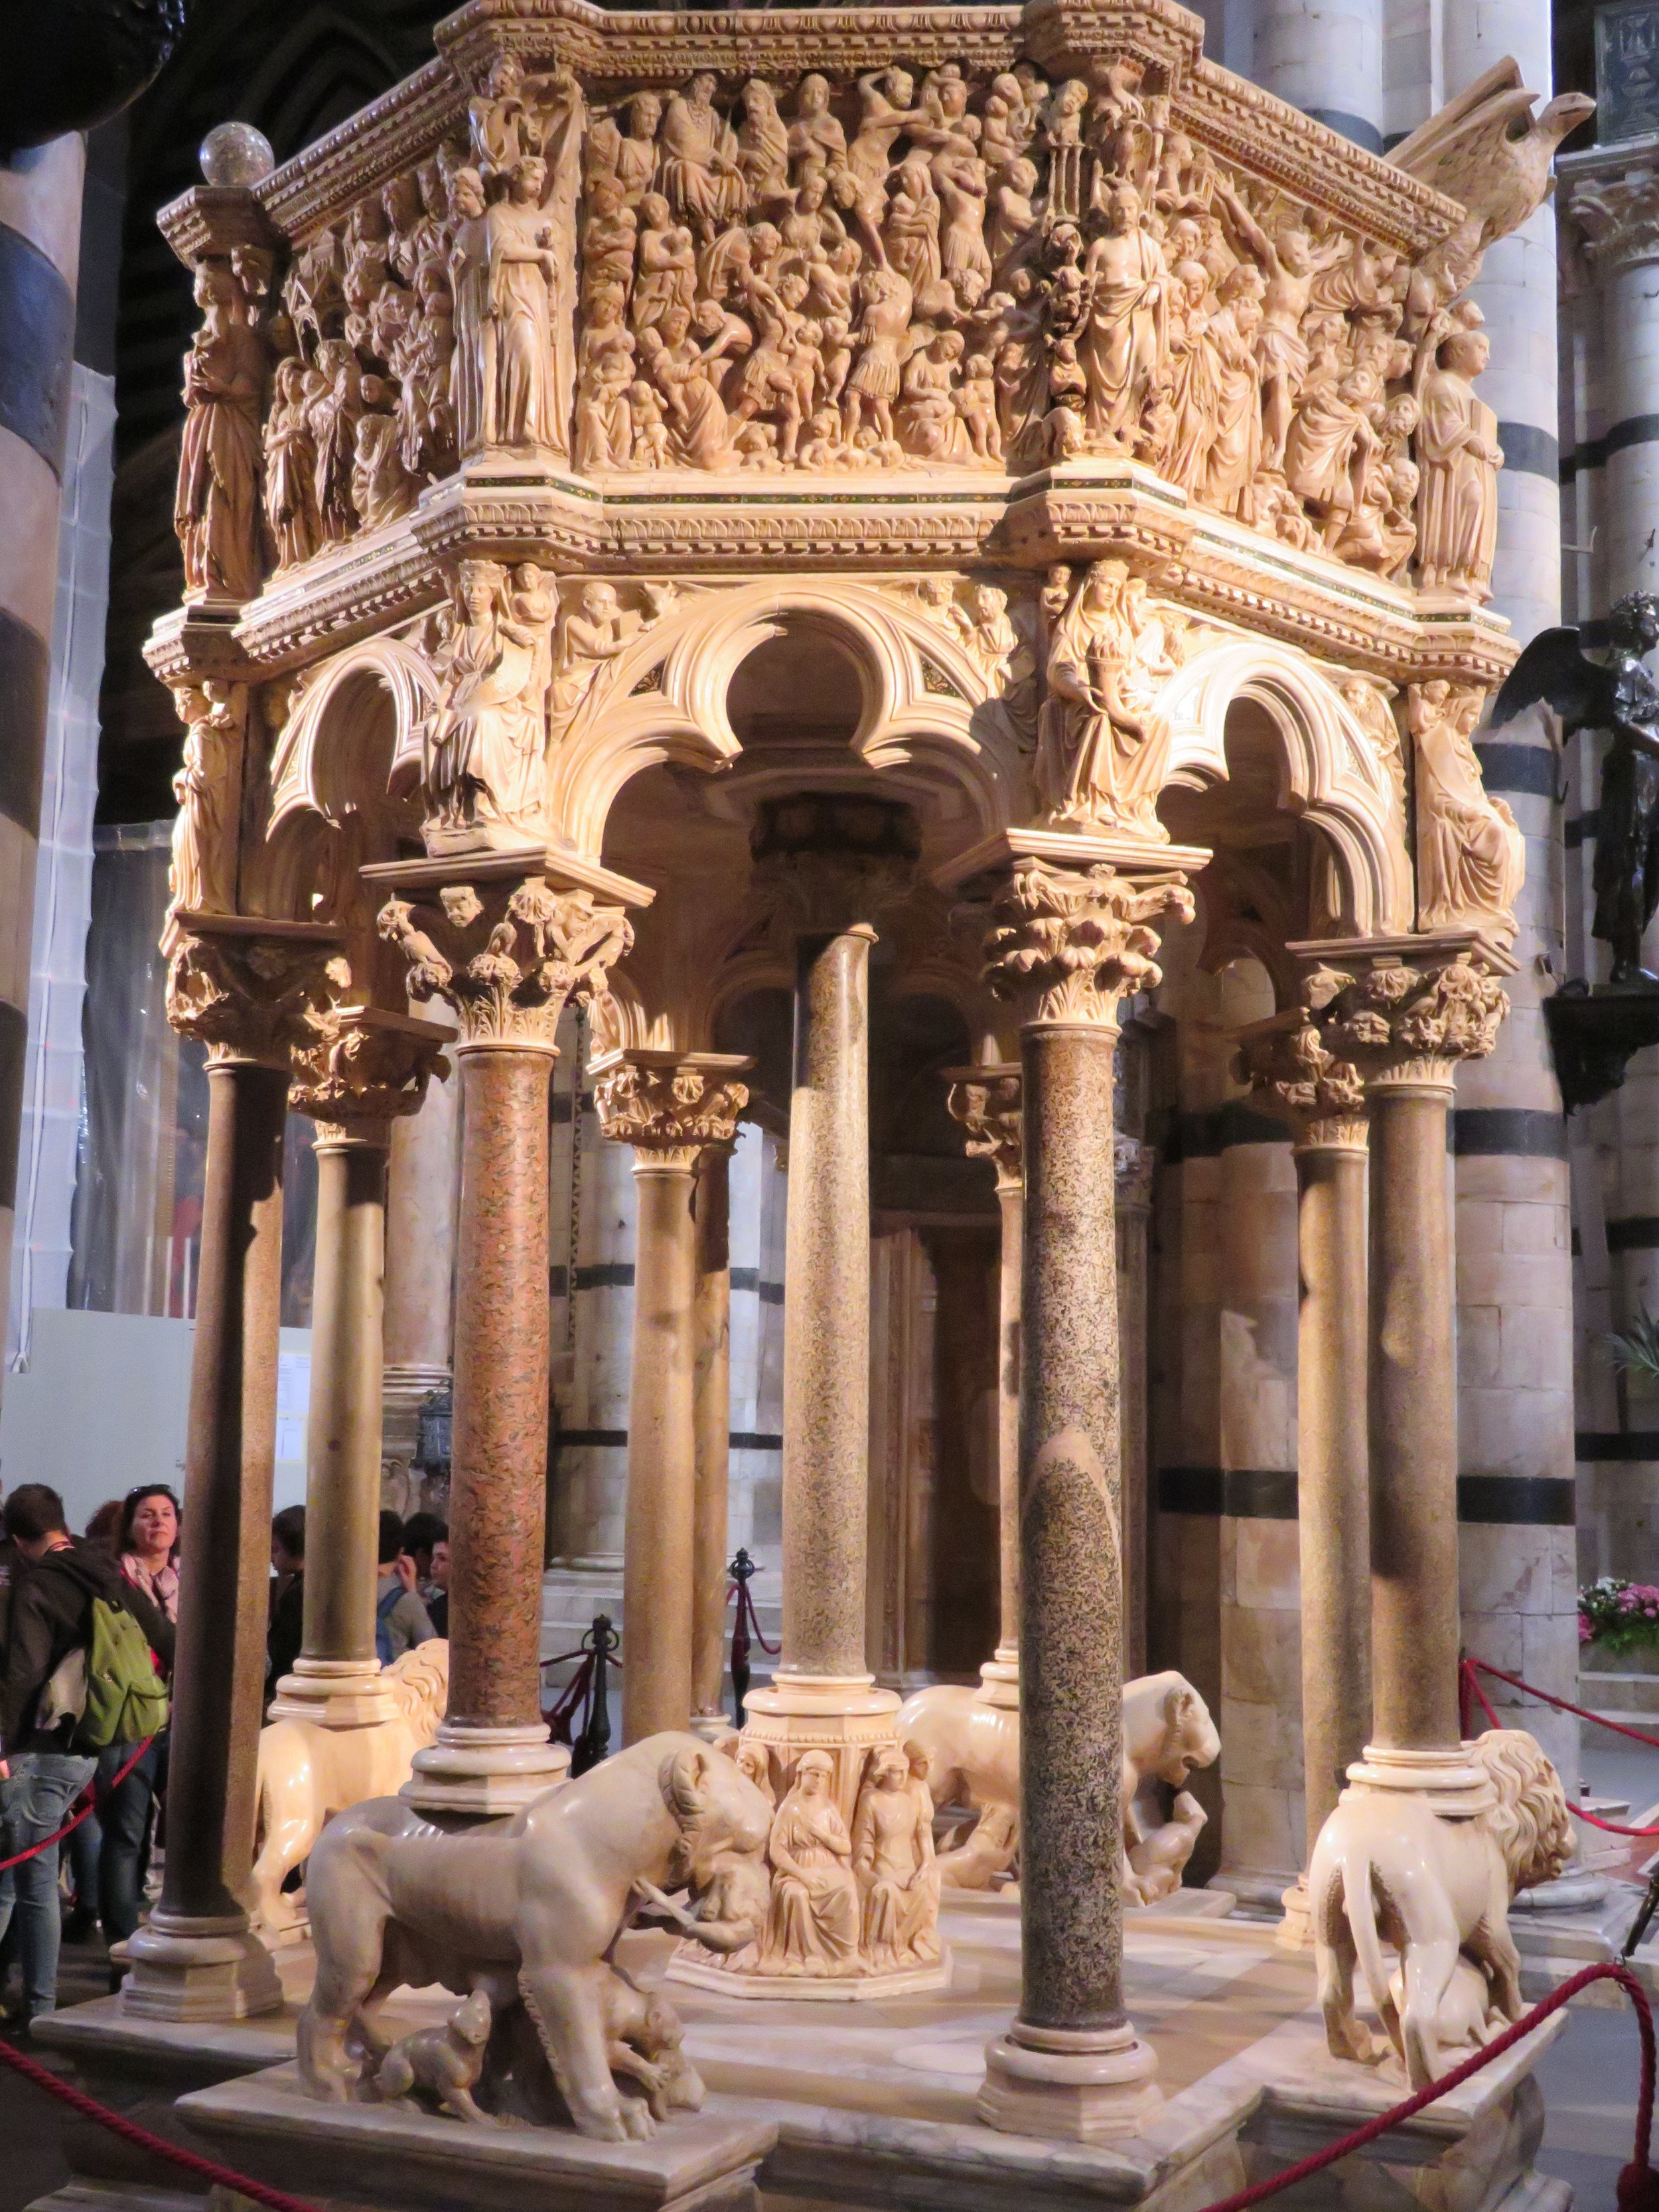 Nicola Pisano's marble pulpit (1265-68) is considered one of the most important sculpted pieces of the Italian 13th century.